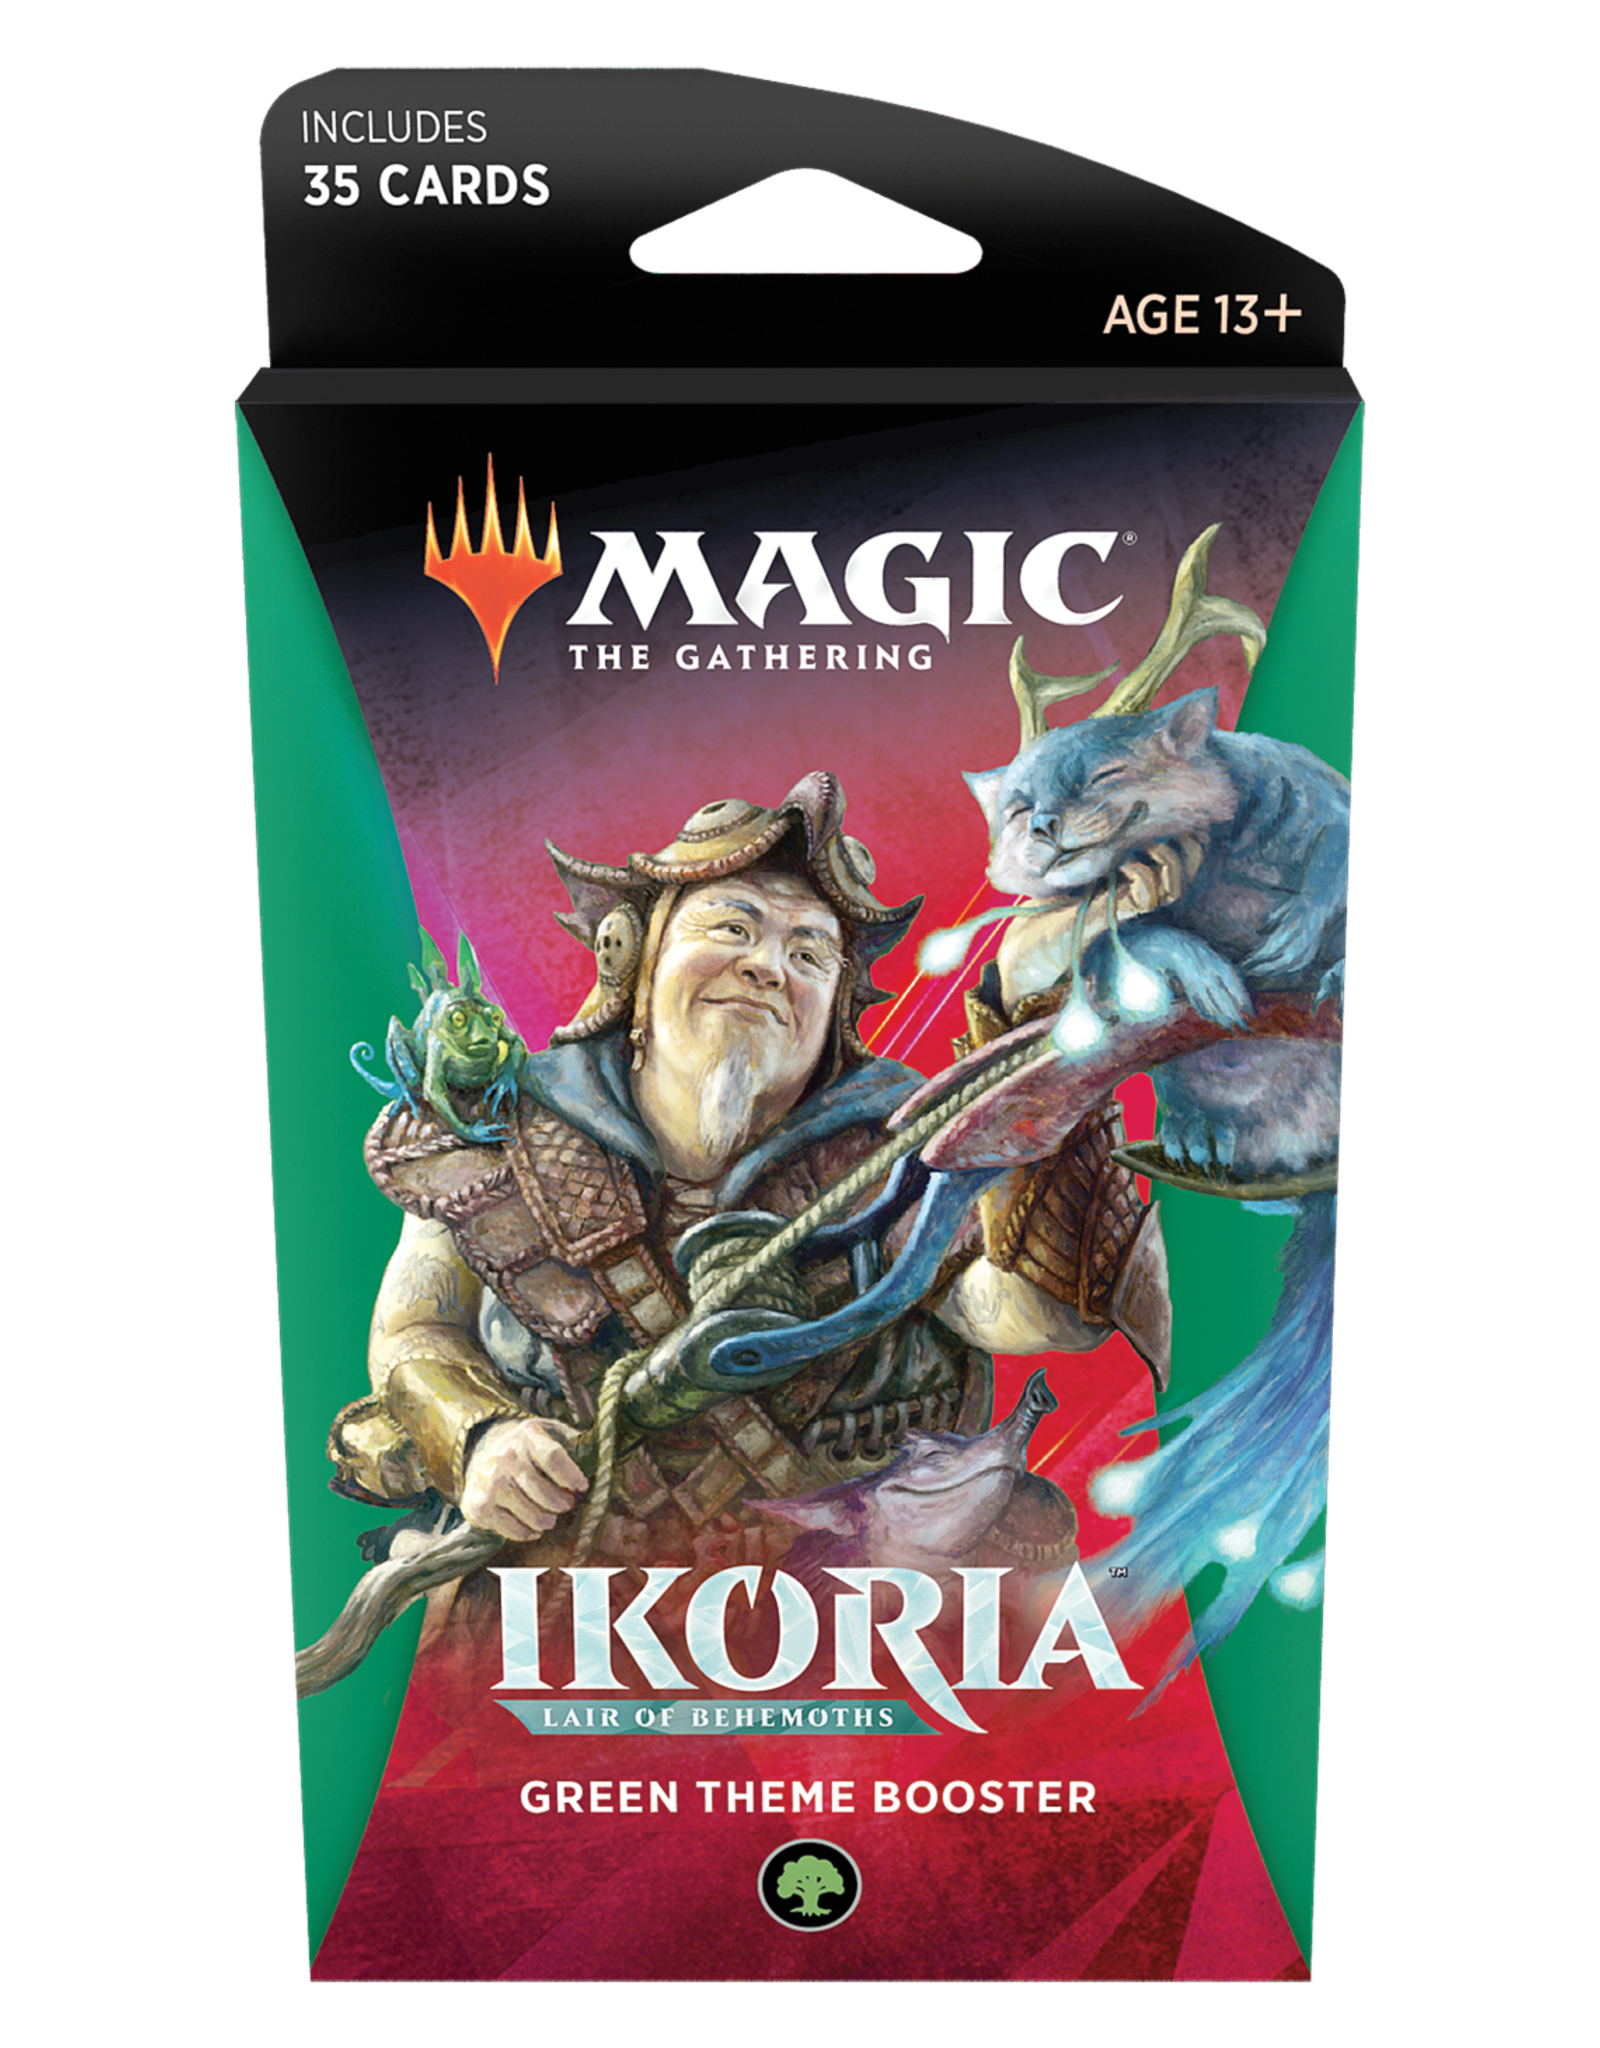 Wizards of the Coast MTG Ikoria - Lair of Behemoths Theme Booster: Green